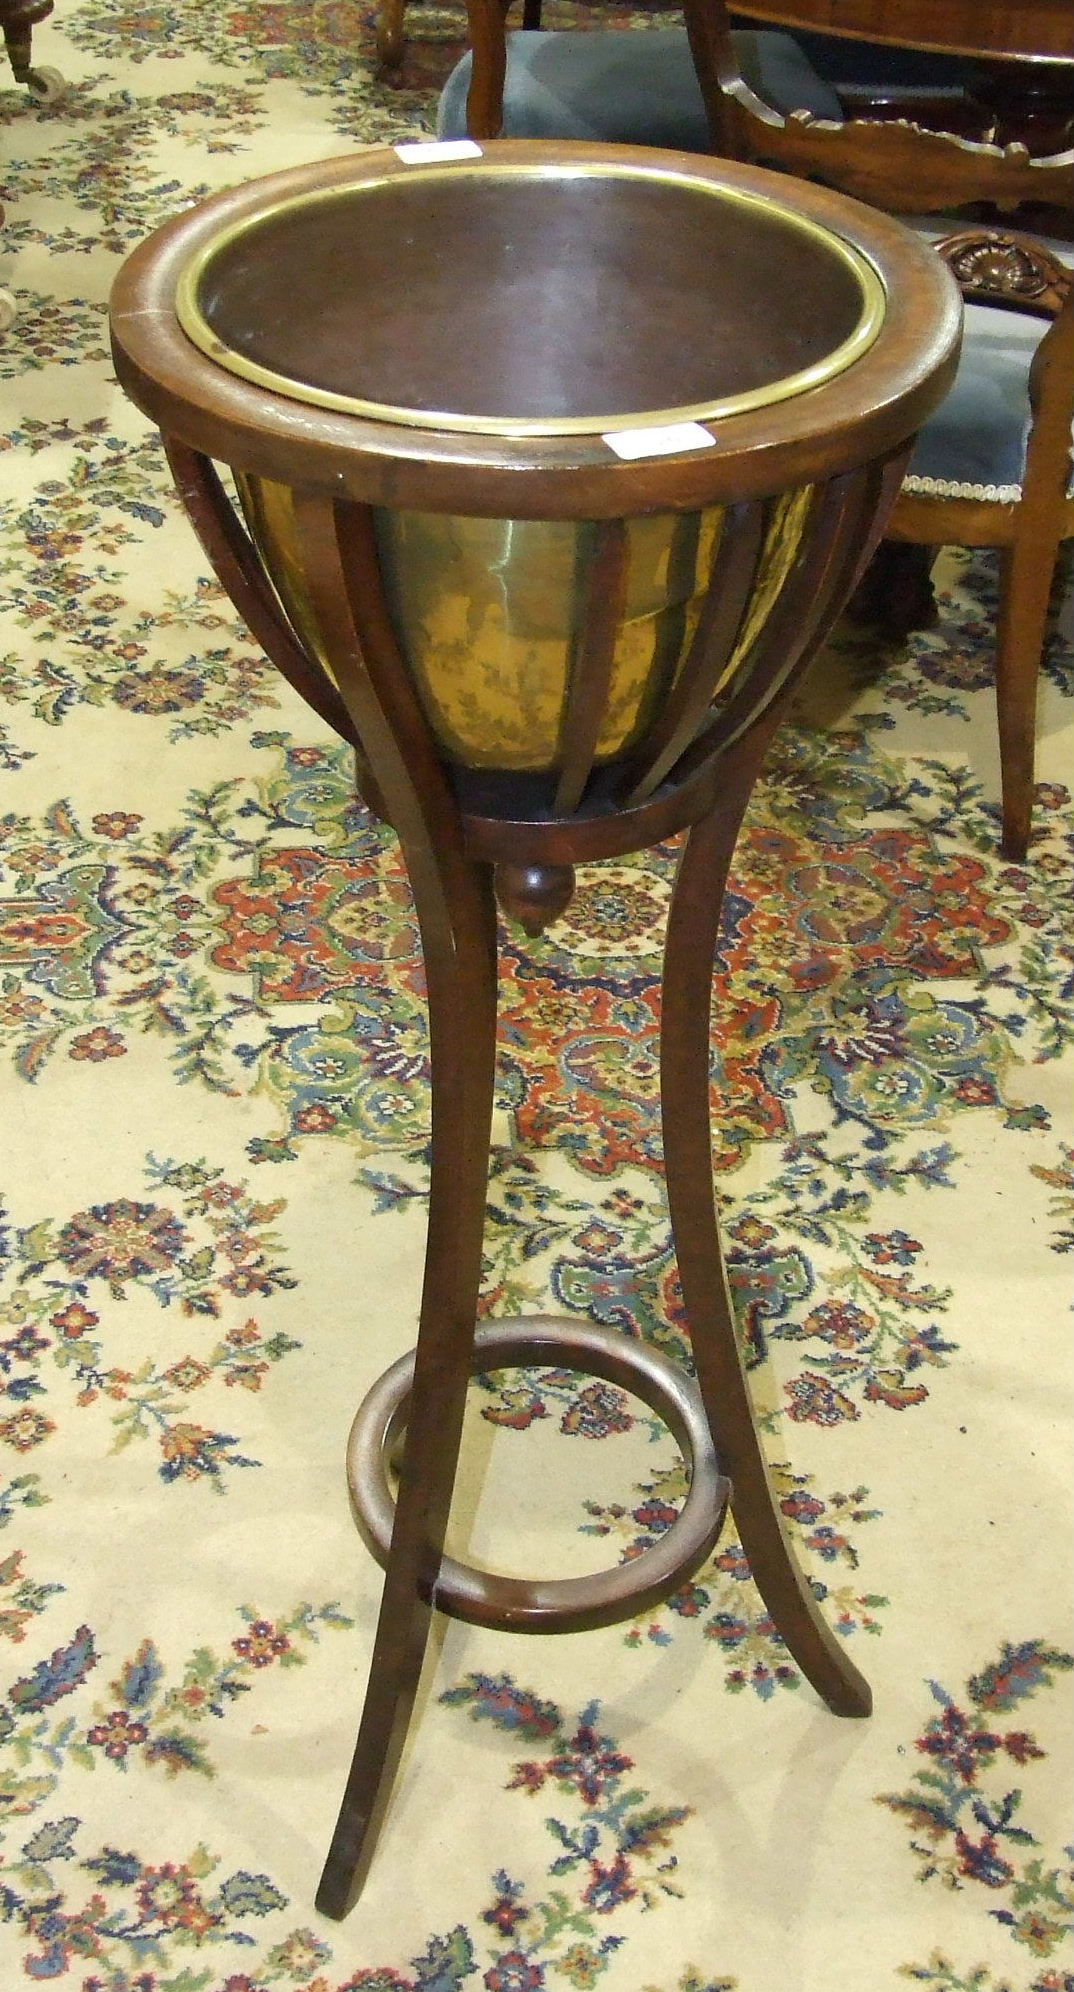 Lot 26 - An early-20th century mahogany jardinière stand, the flared basket-pattern top with moulded rim